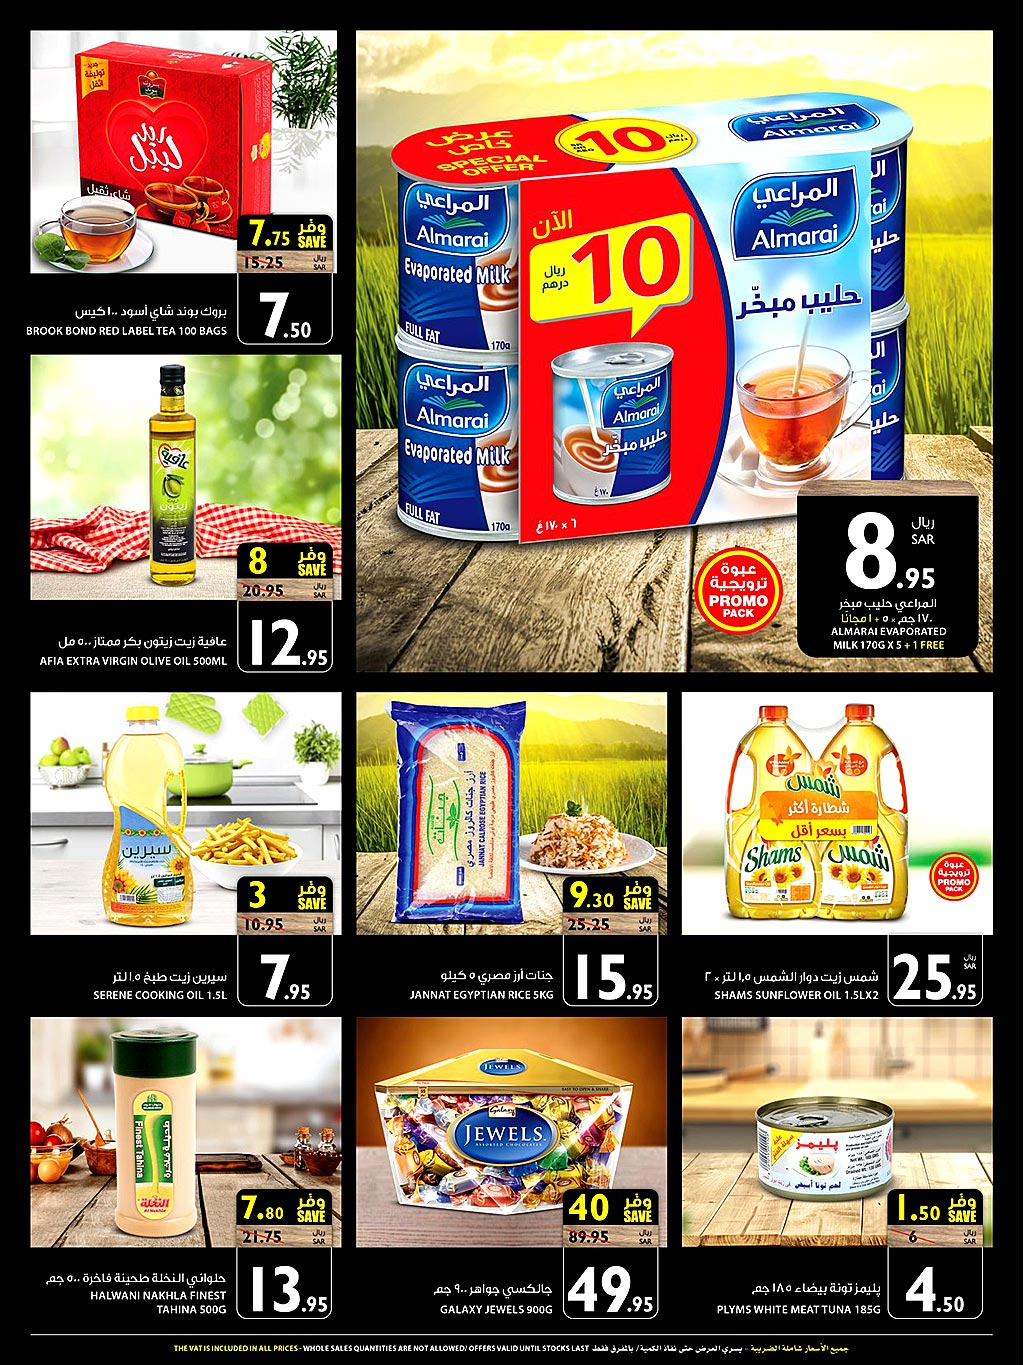 carrefour offers from 5aug to 8aug 2020 page number 2 عروض كارفور-السعودية من 5 أغسطس حتى 8 أغسطس 2020 صفحة رقم 2